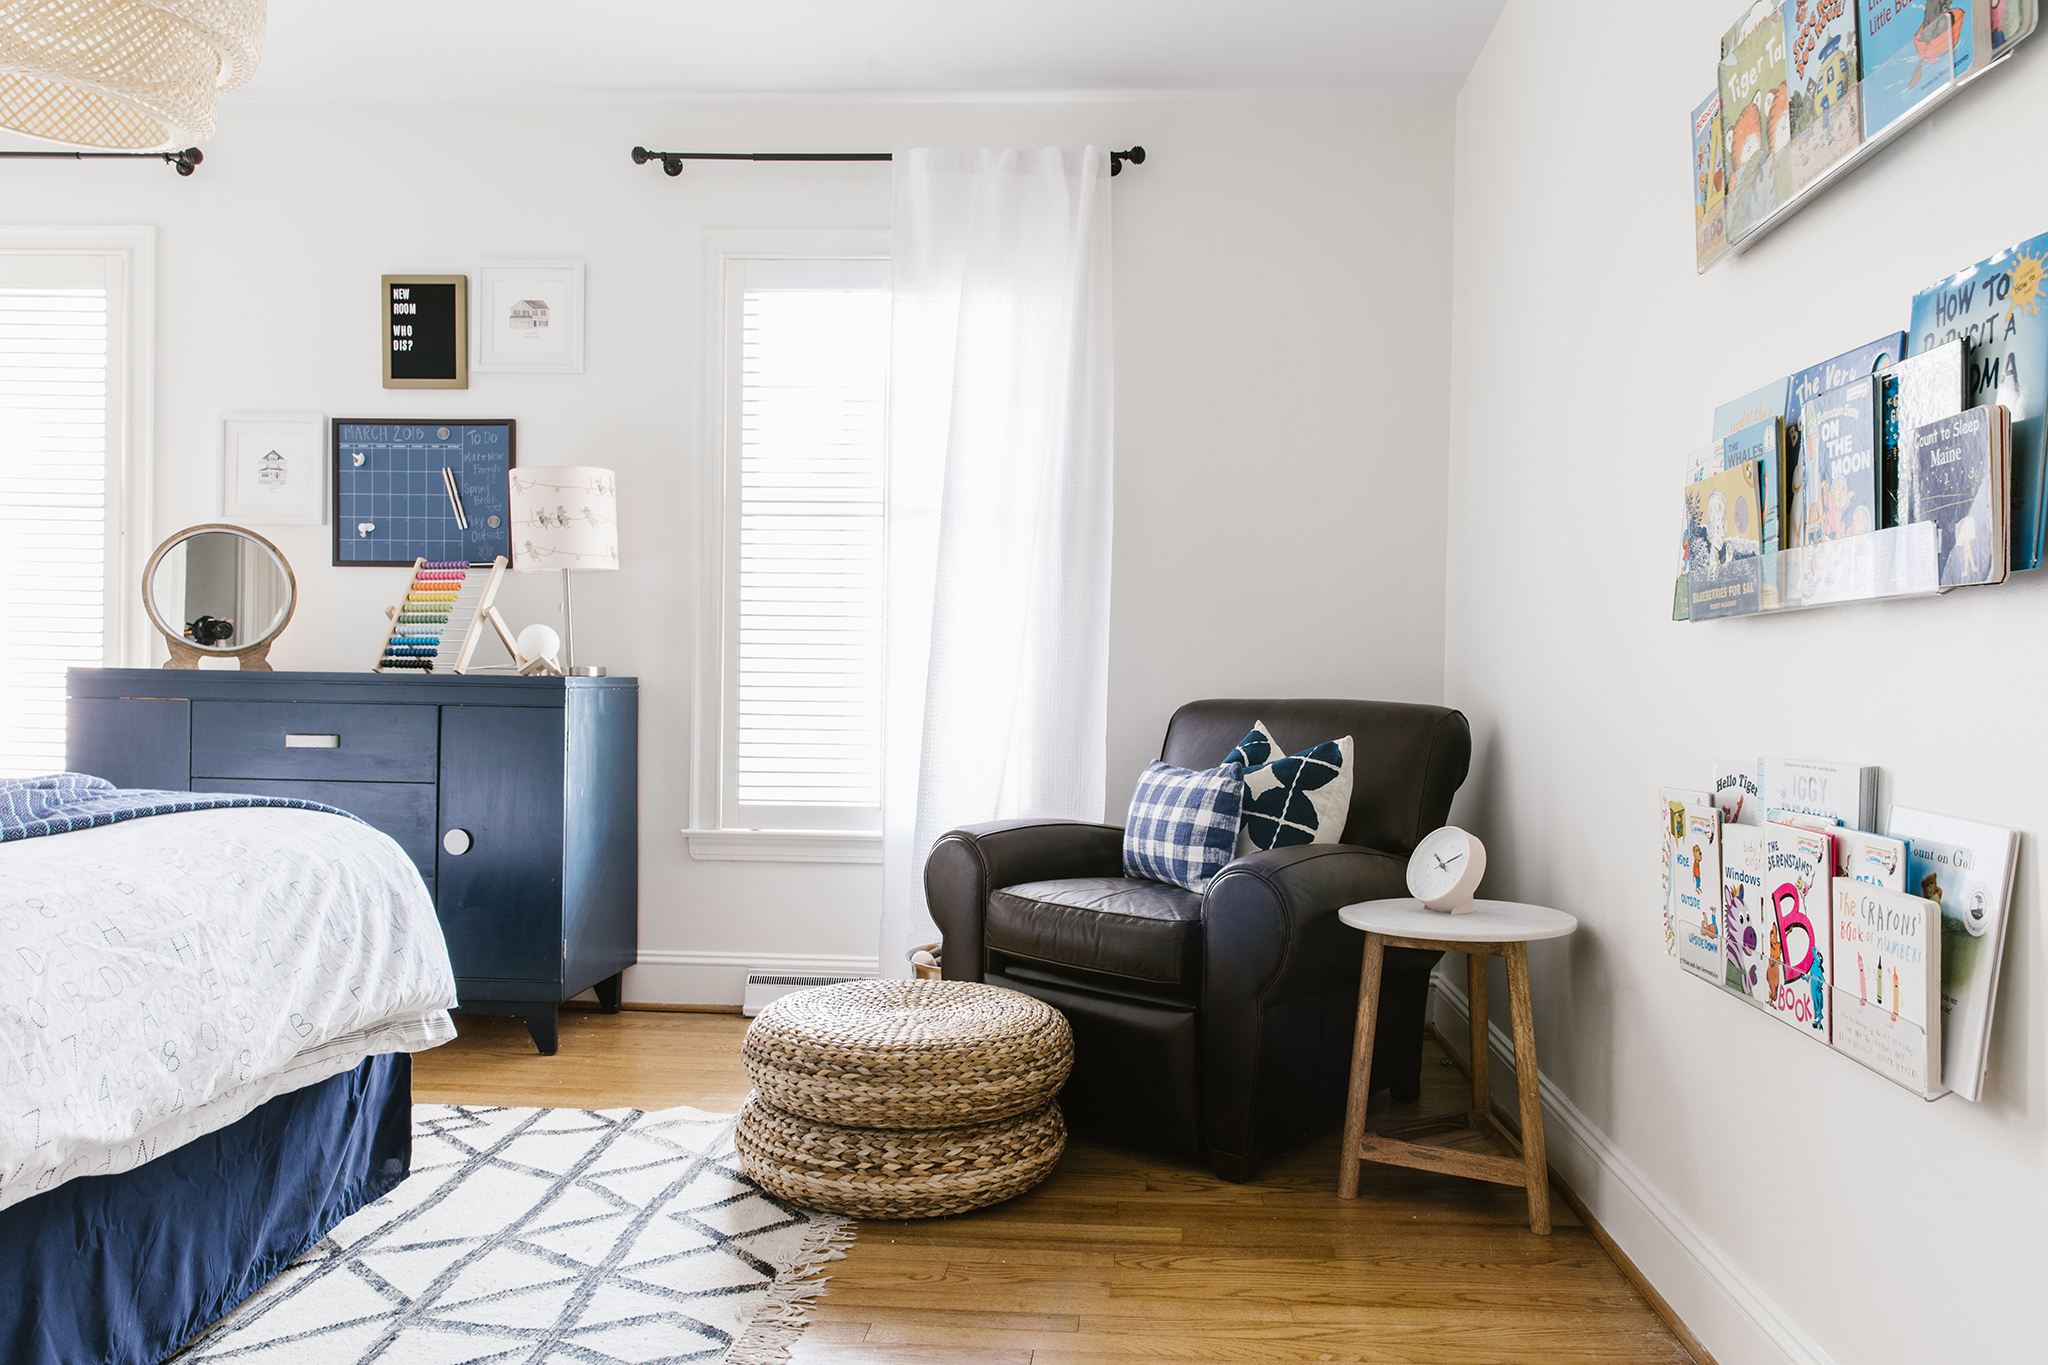 Vintage Inspired Boys Room with Leather Club Chair